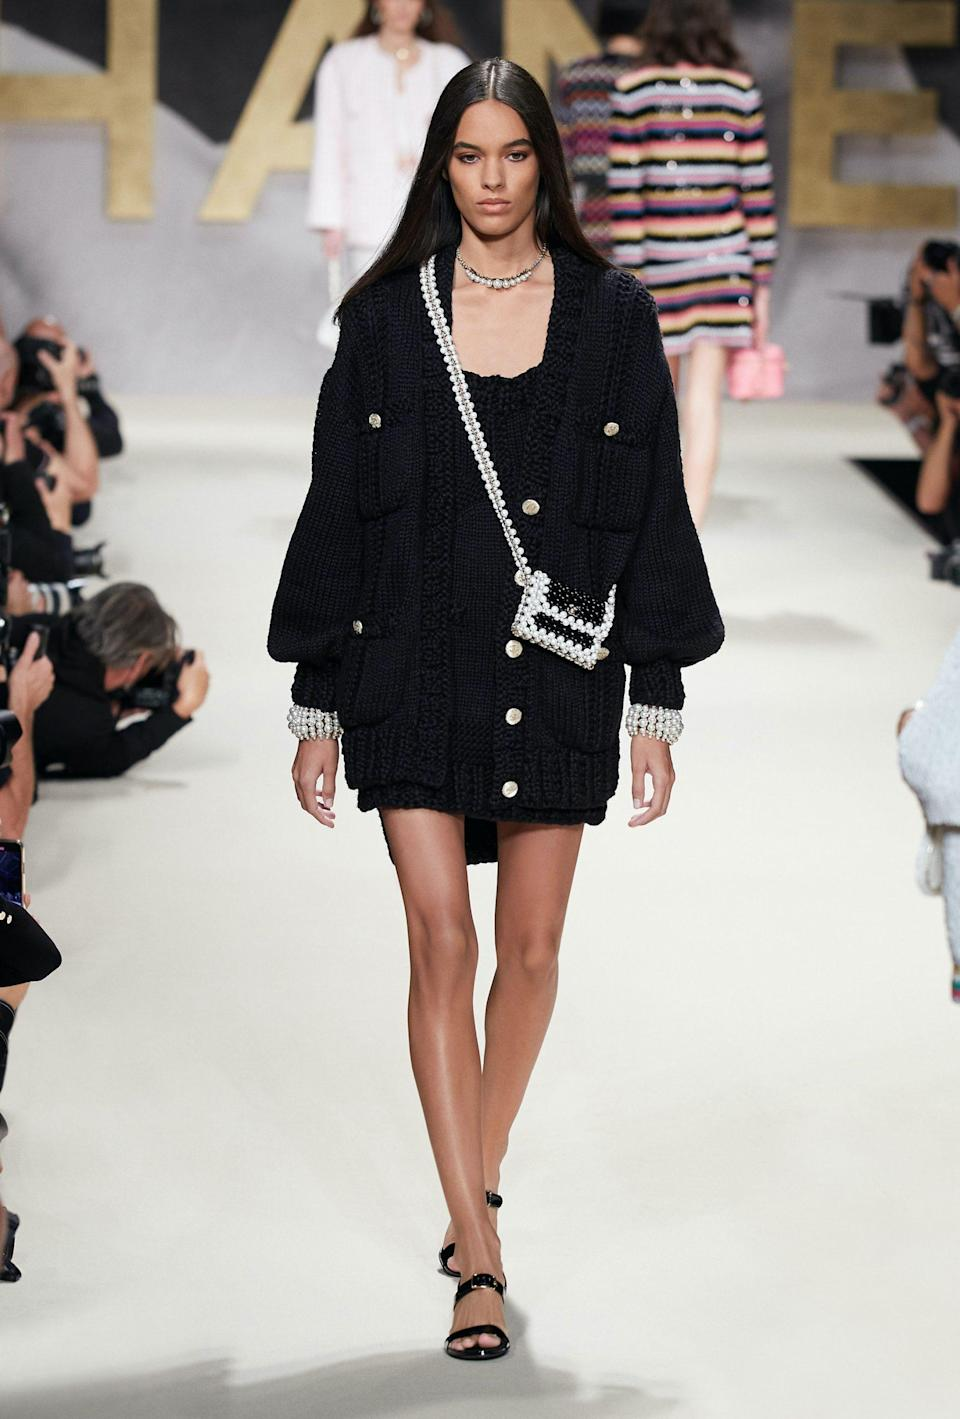 Chanel Brought The Romance To Paris Fashion Week